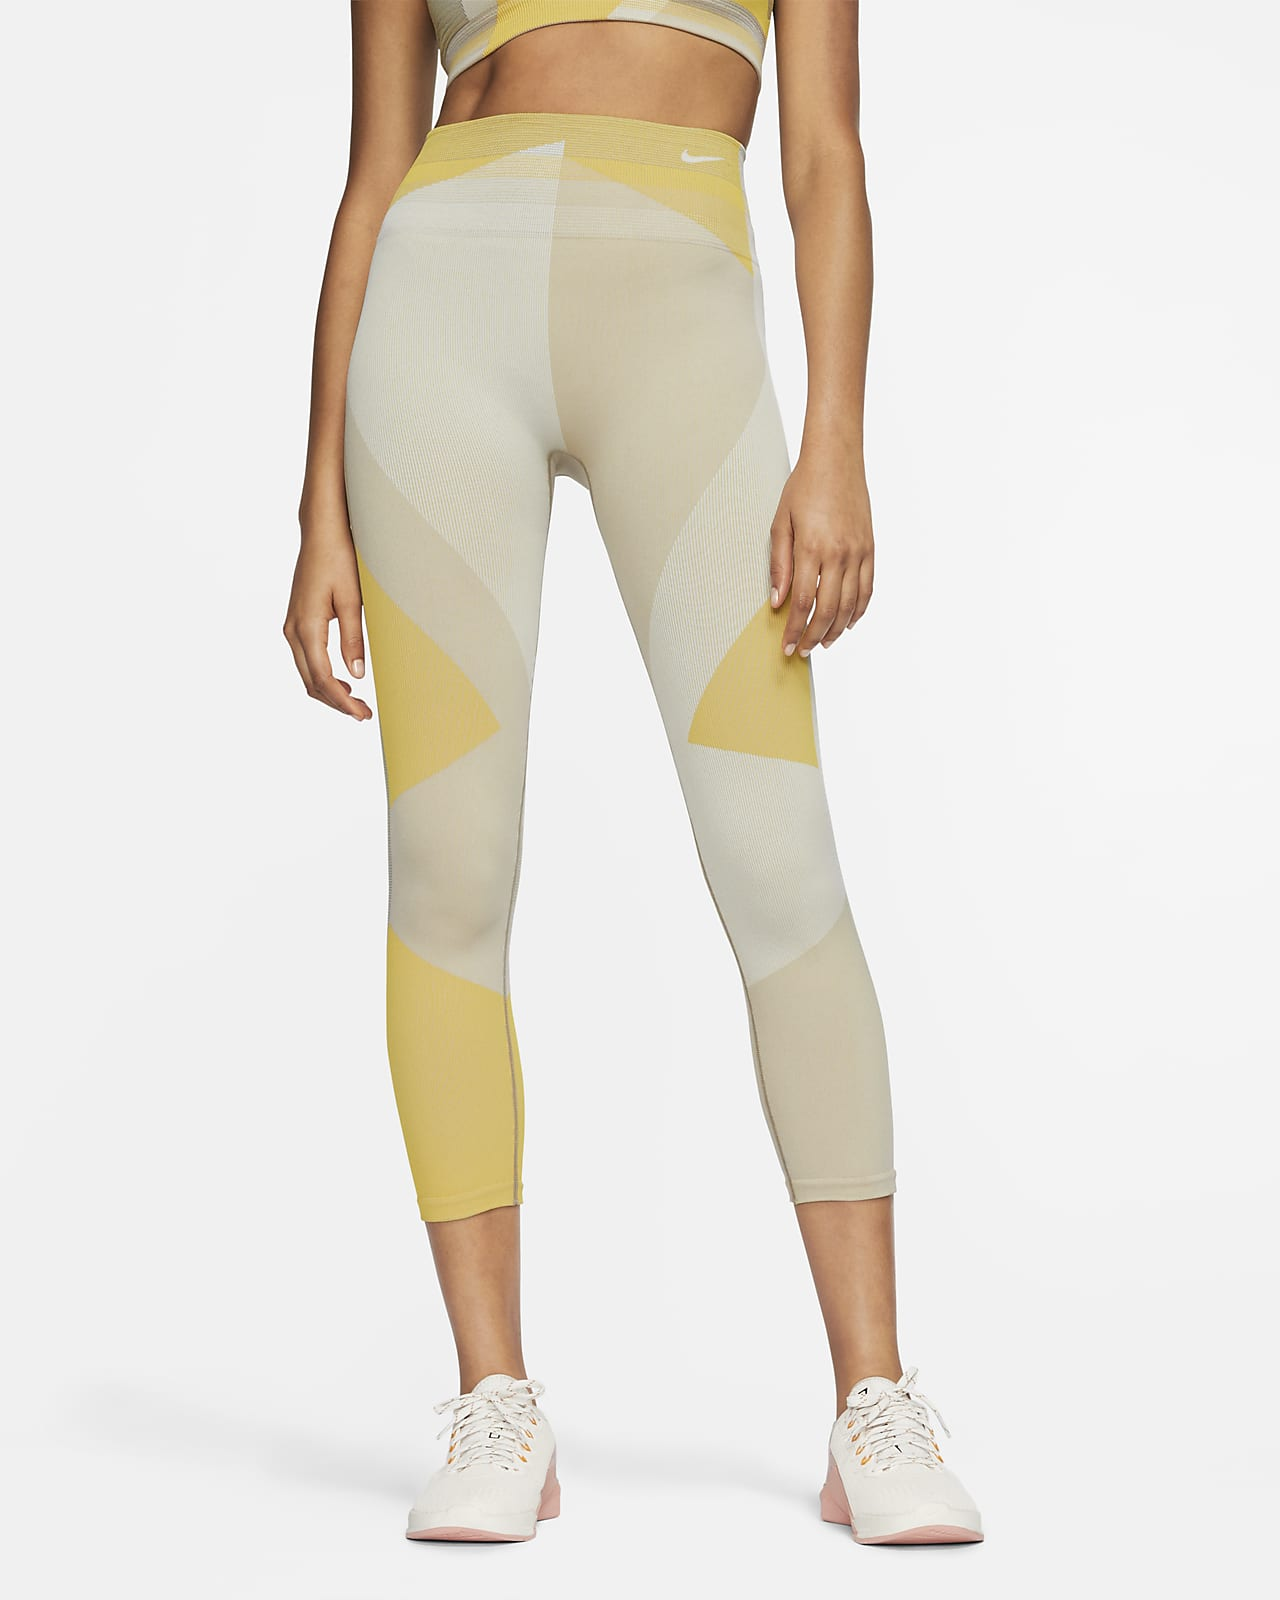 Nike Sculpt Icon Clash nahtlose 7/8-Trainingstights für Damen